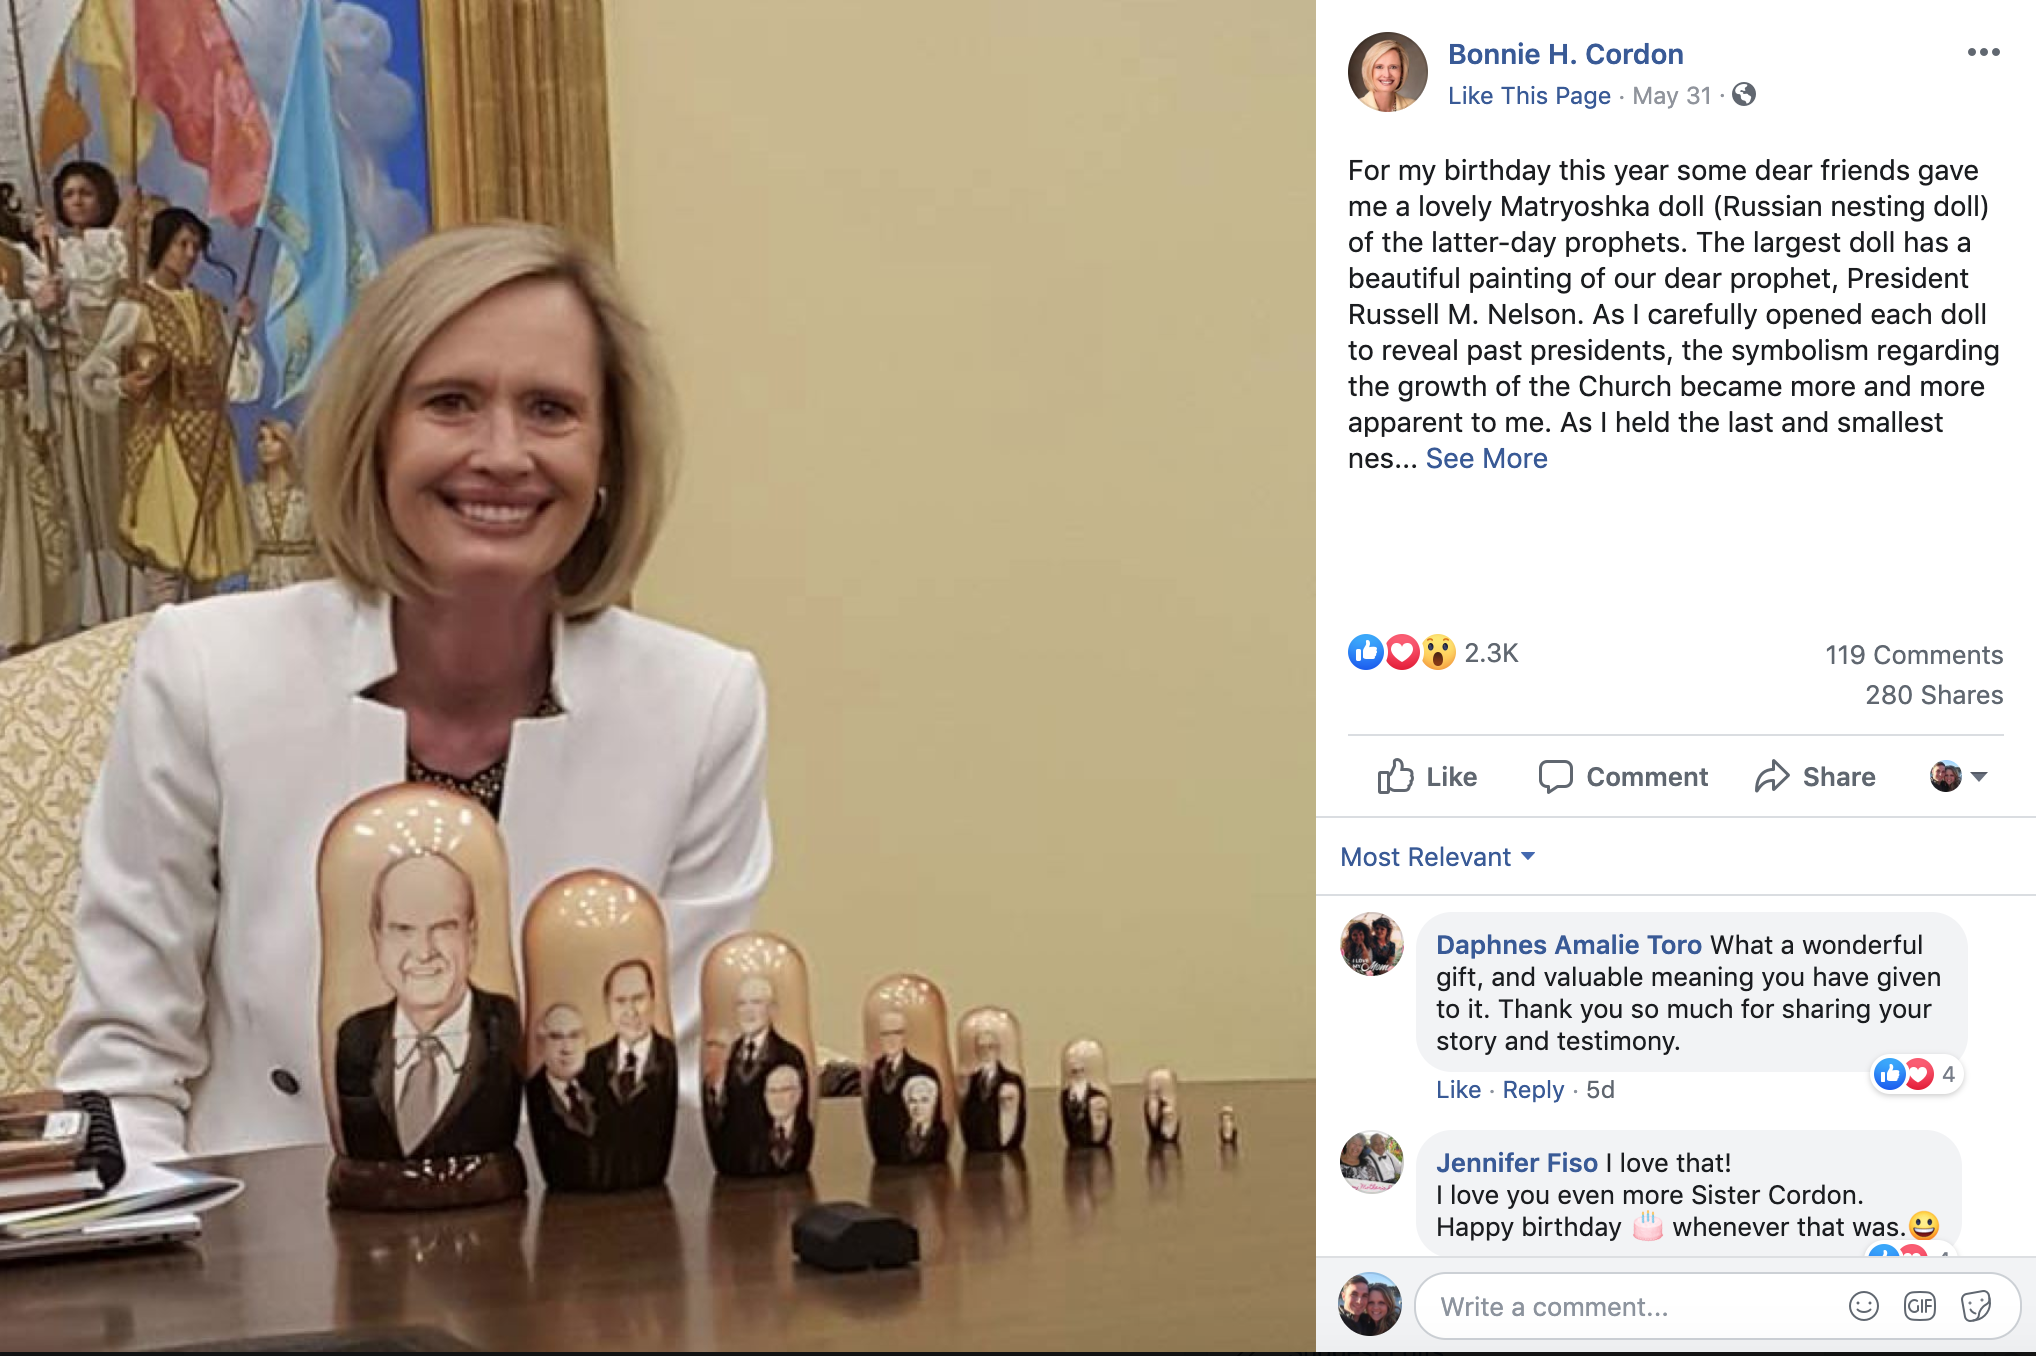 Sister Bonnie H. Cordon, the Church's Young Women general president, received a hand-painted Russian nesting doll for her birthday this year. The paintings on each of the pieces represent latter-day prophets from Joseph Smith to President Russell M. Nelson.